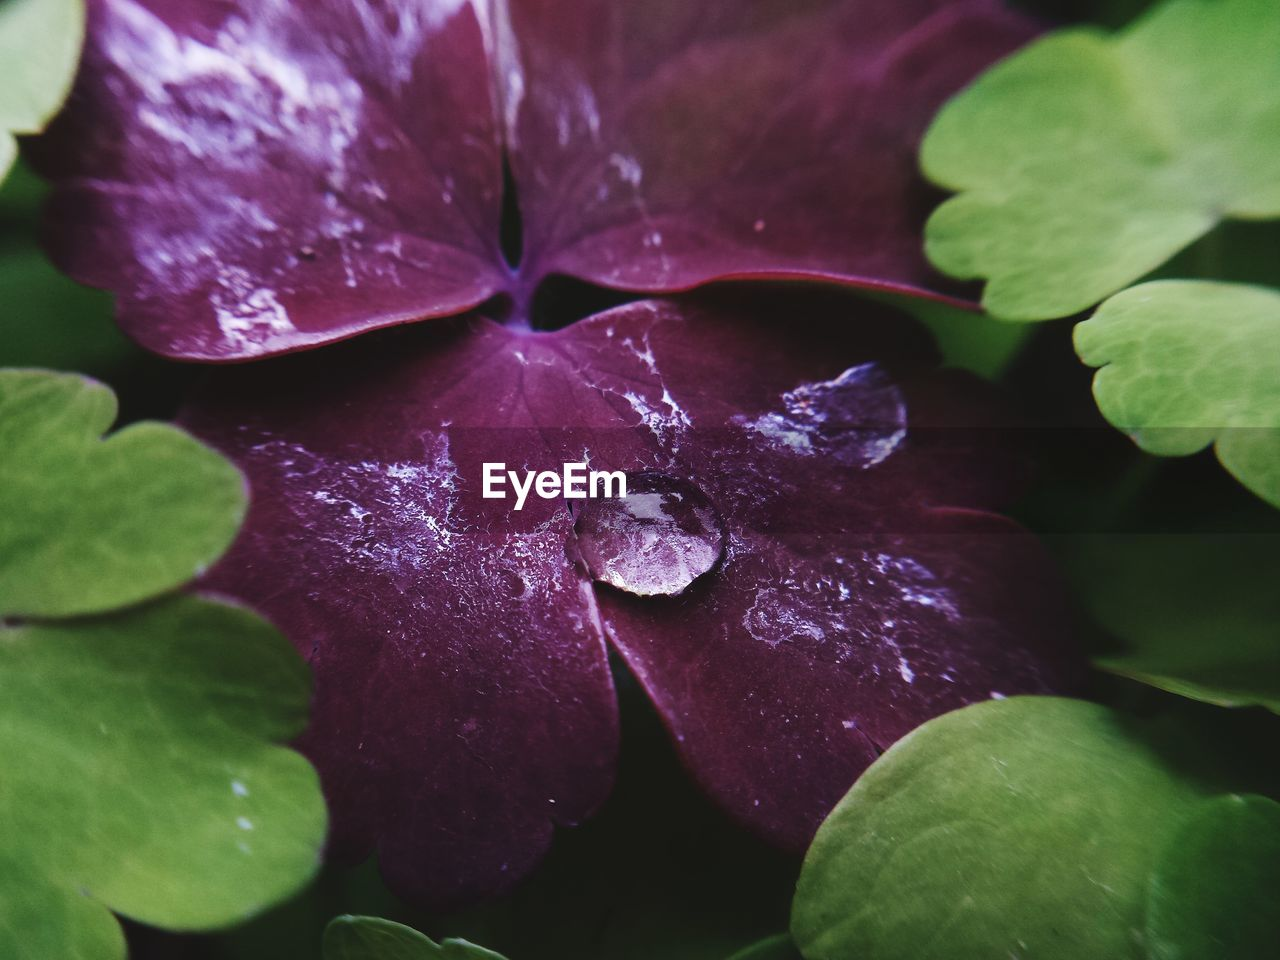 plant, plant part, leaf, beauty in nature, close-up, freshness, growth, flower, flowering plant, purple, drop, vulnerability, nature, fragility, wet, no people, petal, water, inflorescence, flower head, outdoors, dew, raindrop, purity